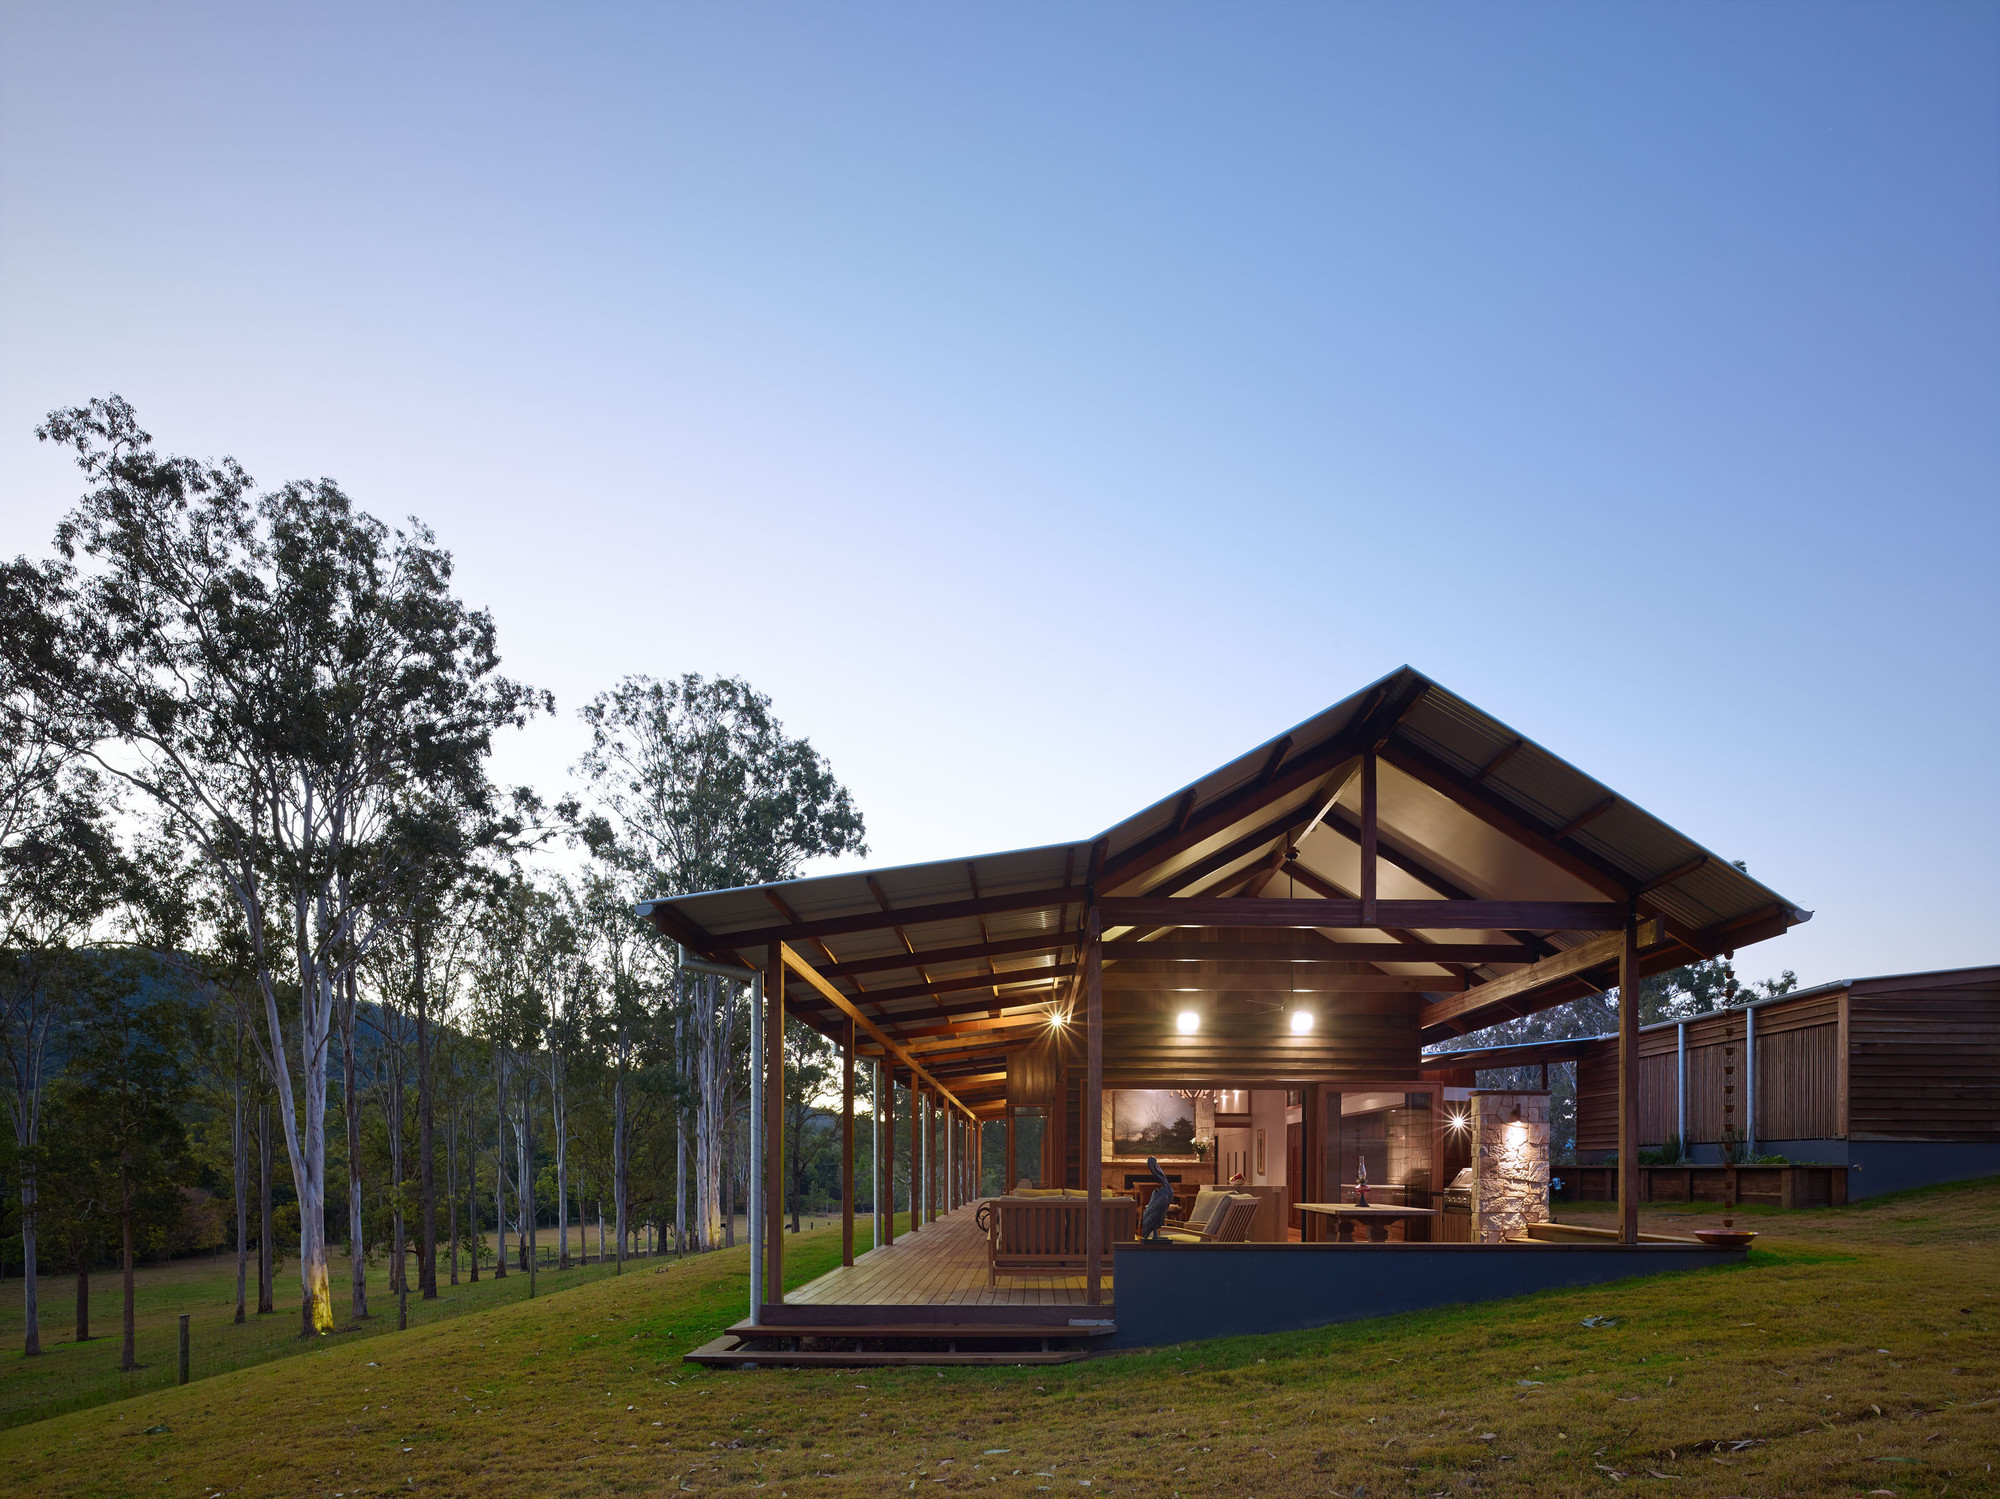 Hinterland house captures the spirit of rural australian style for Home architecture australia